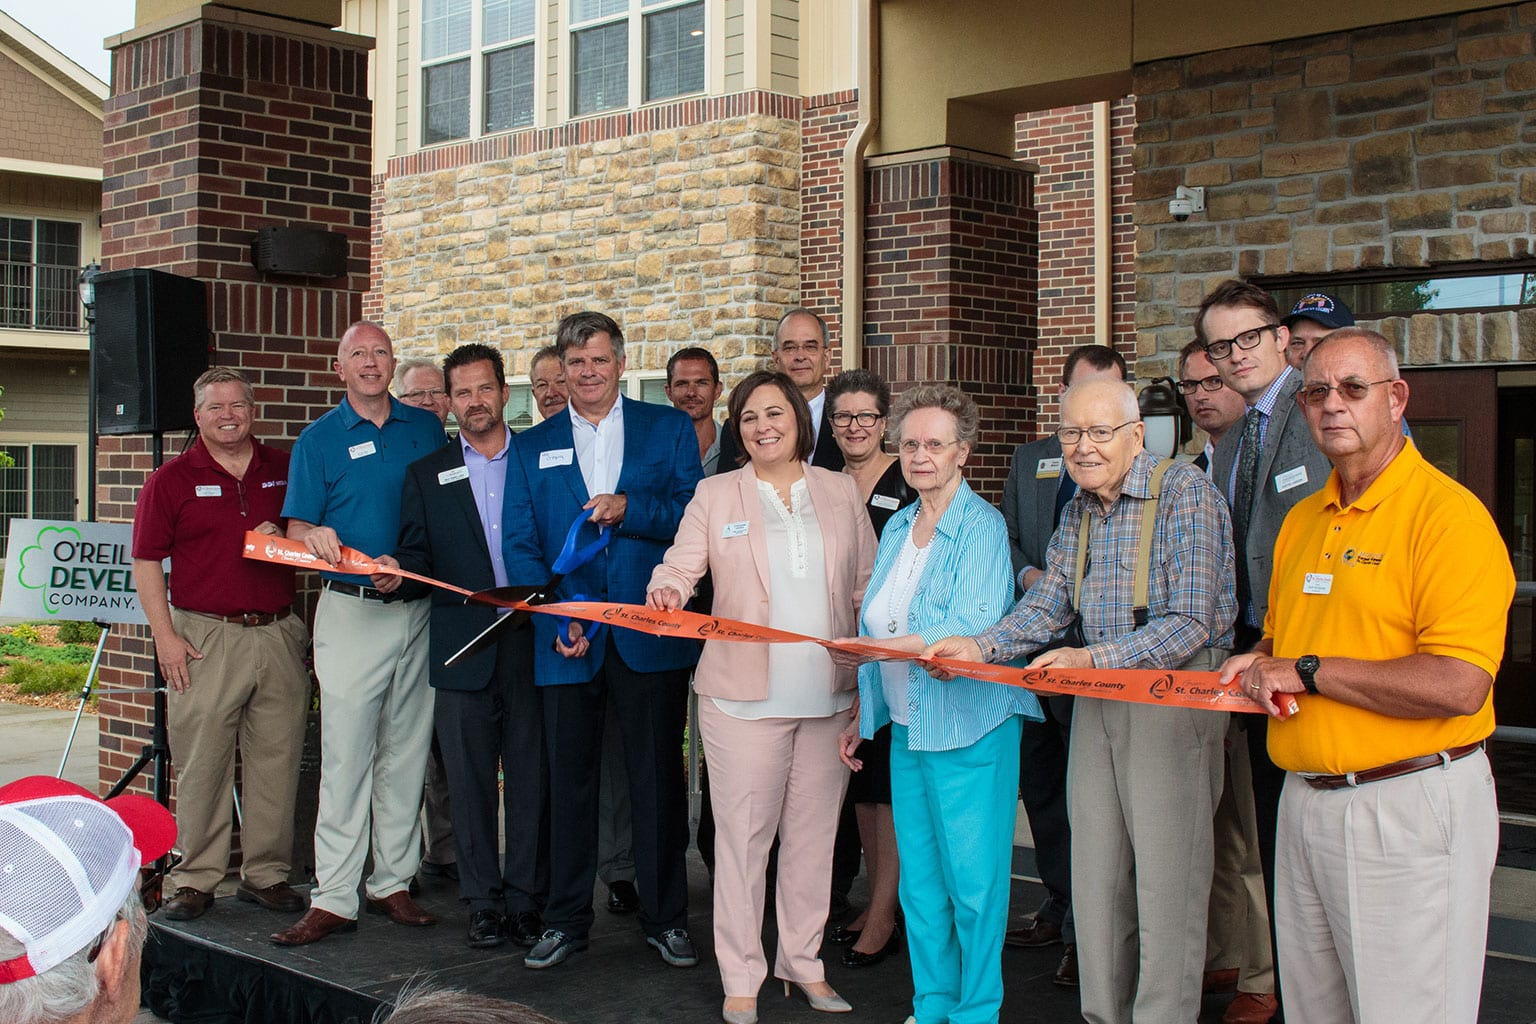 The Boulevard of St. Charles Grand Opening & Ribbon Cutting